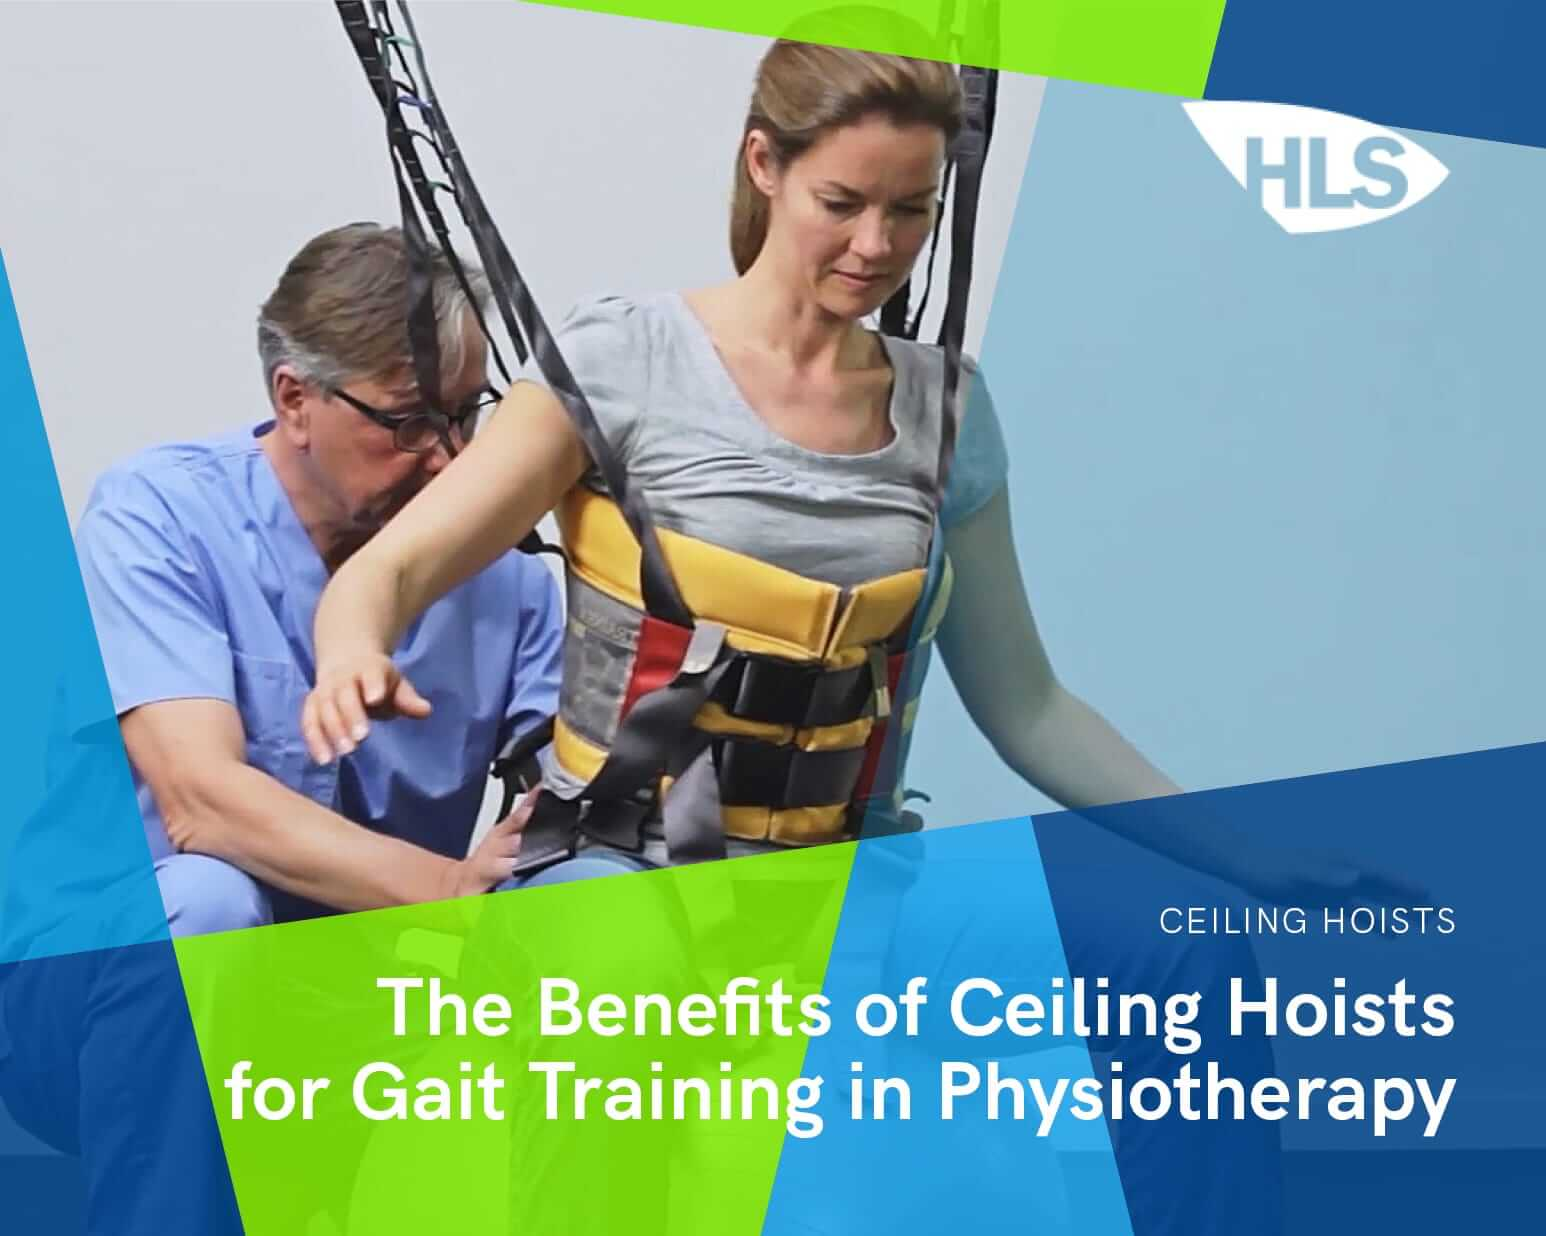 The Benefits of Ceiling Hoists for Gait Training in Physiotherapy